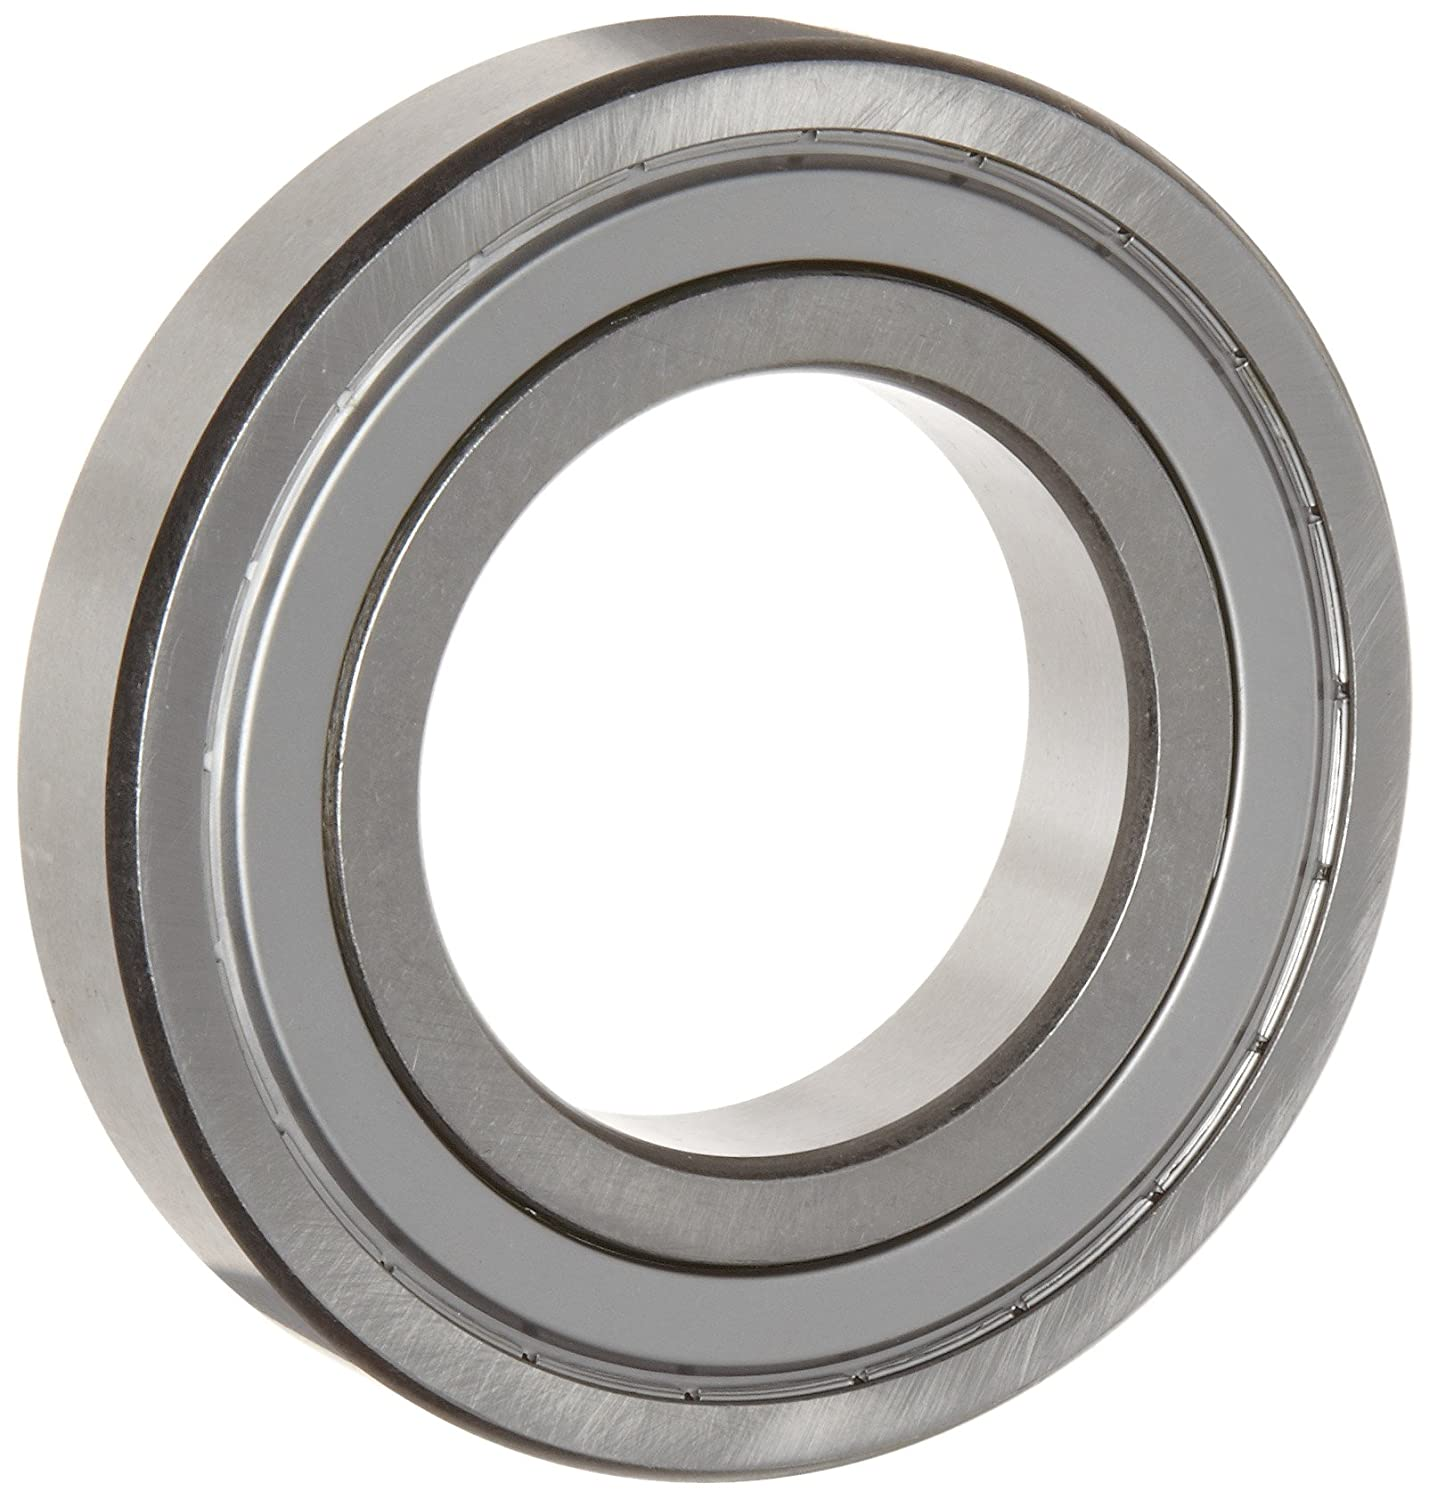 WJB 6205-16-ZZ Deep Groove Ball Bearing, Double Sheilded, Metric, 25.4mm ID, 52mm OD, 15mm Width, 3150lbf Dynamic Load Capacity, 1770lbf Static Load Capacity